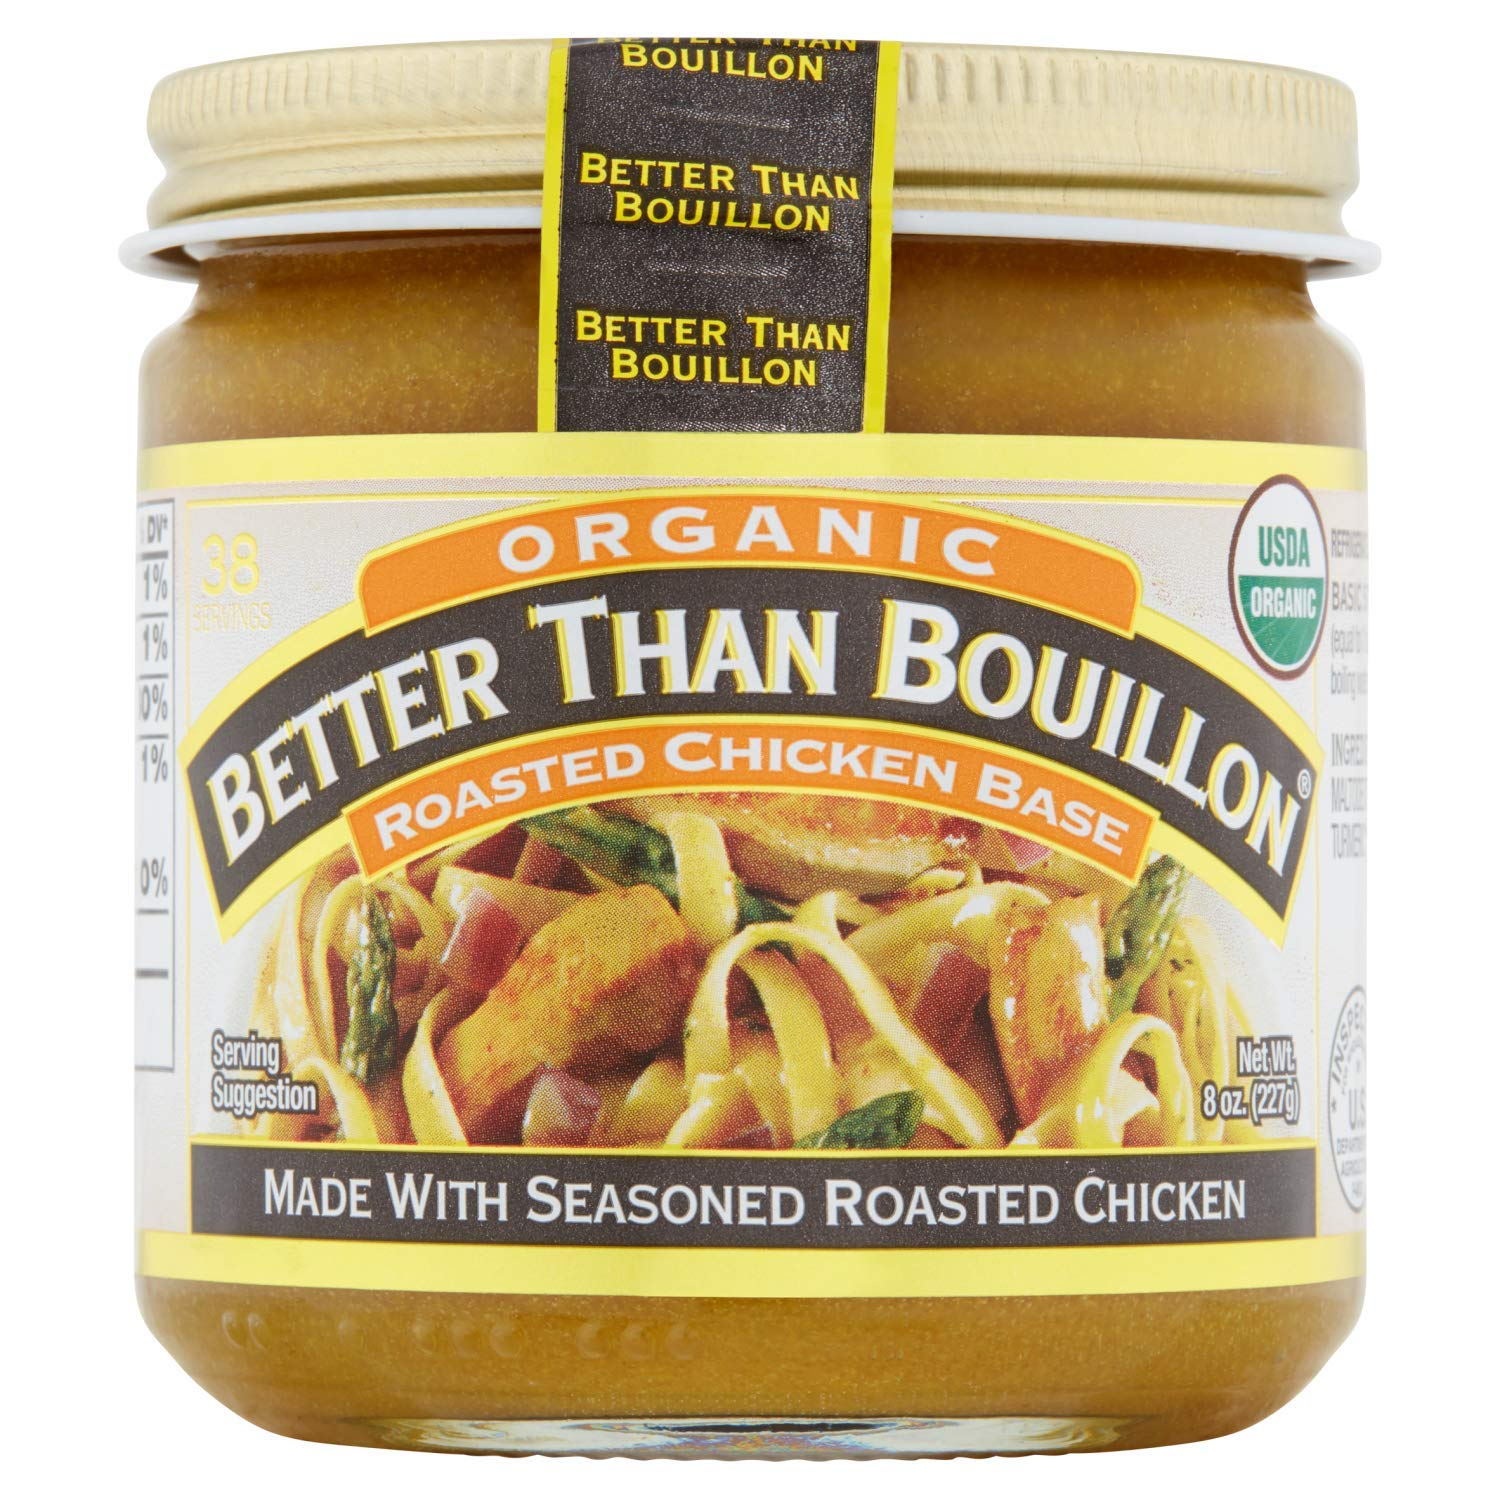 Better Than Bouillon, Organic Roasted Chicken Base, 8 oz. (Pack of 3)